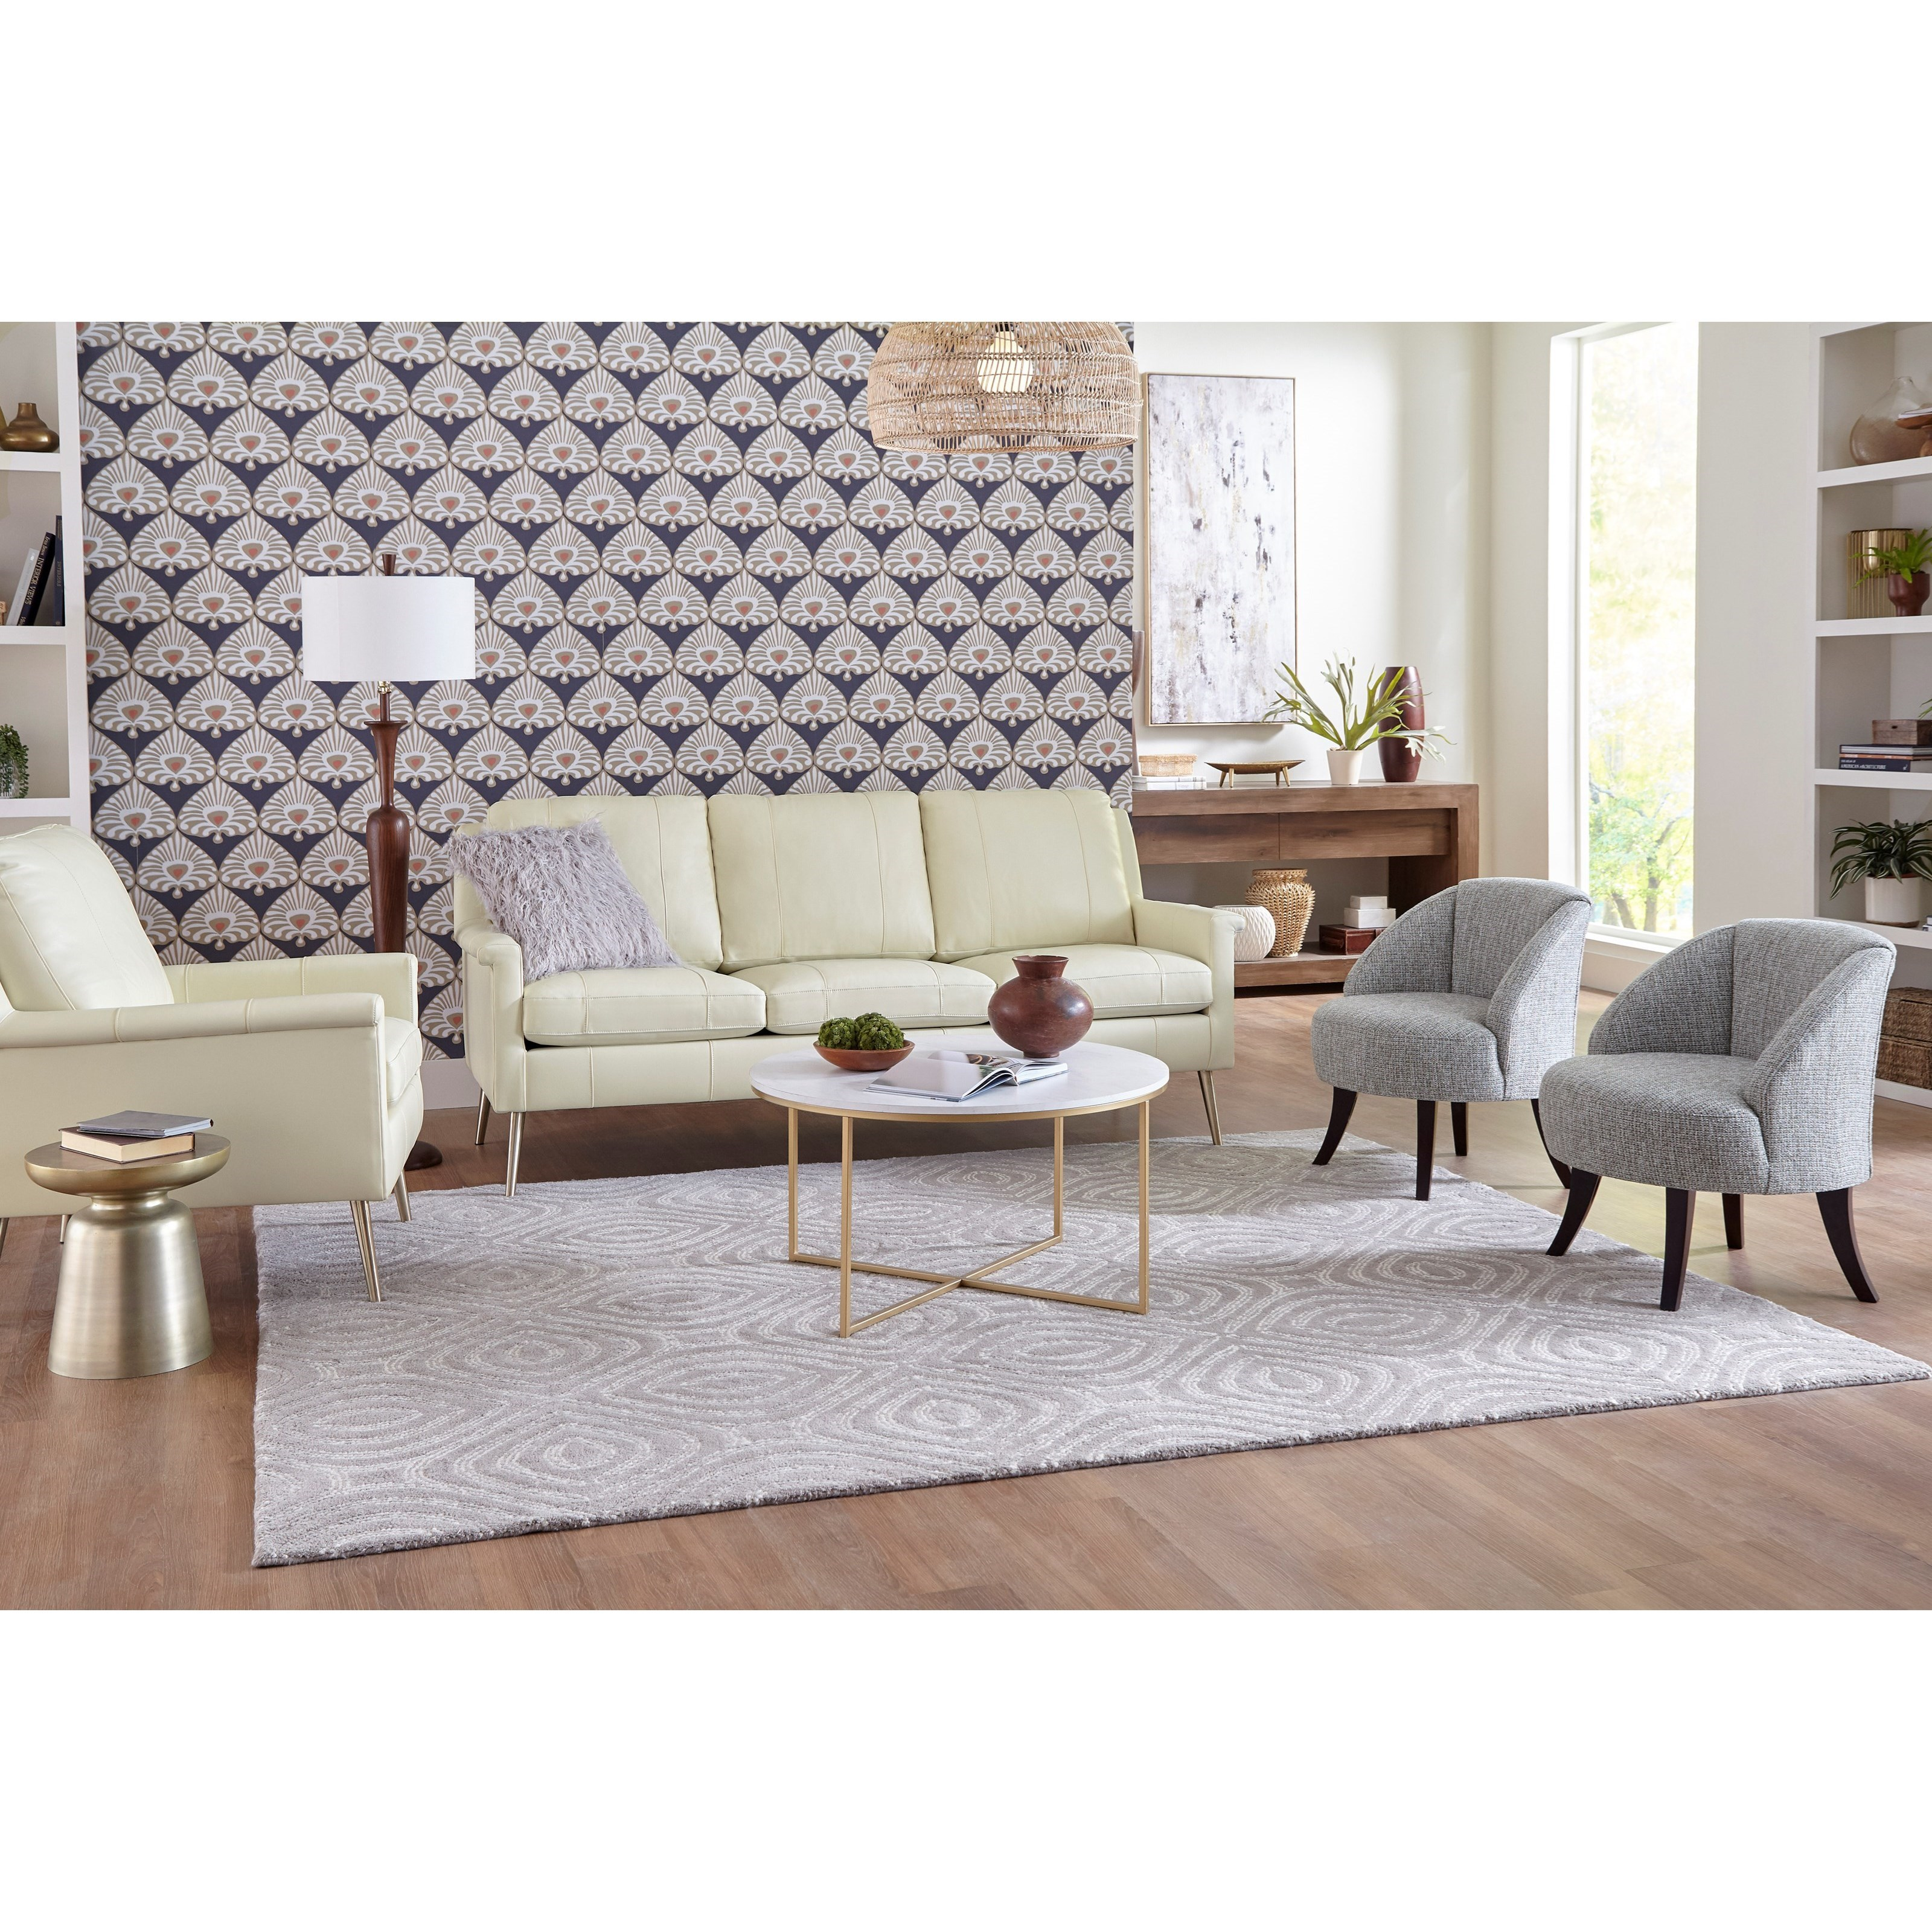 Dacey Living Room Group by Best Home Furnishings at Saugerties Furniture Mart